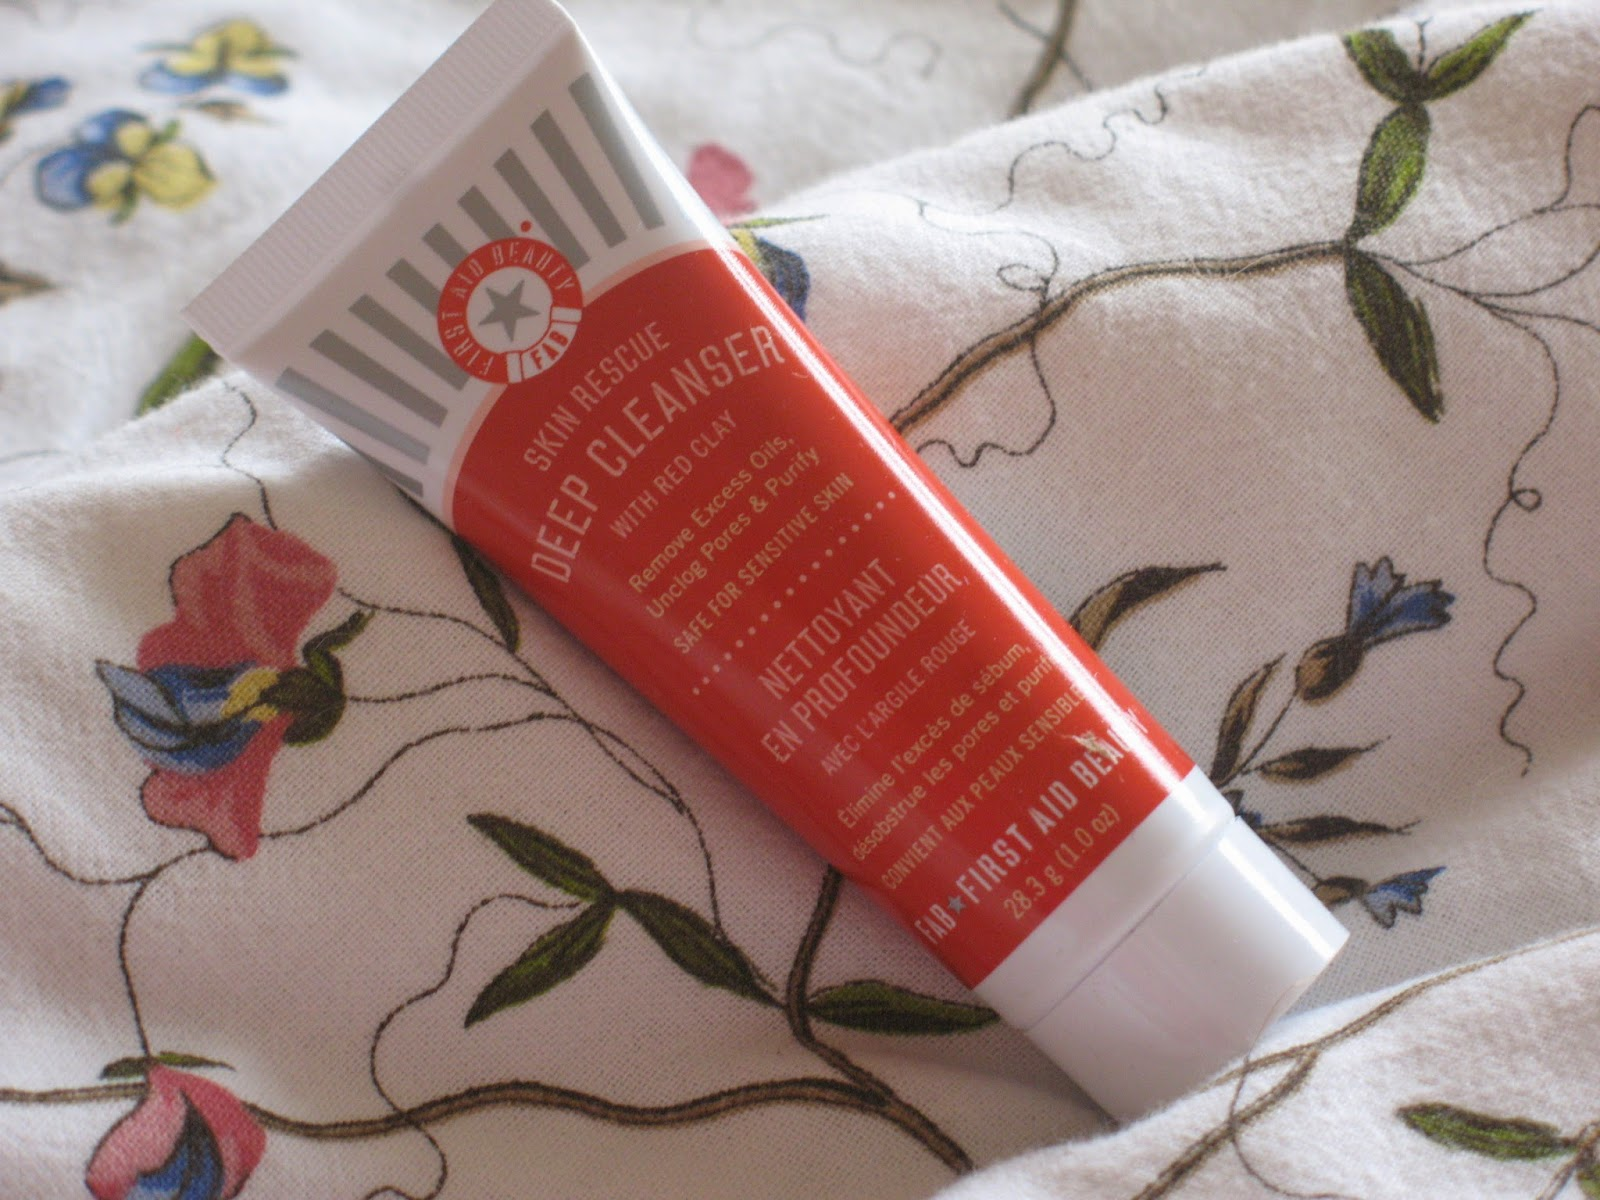 FAB Cleanser, First Aid Beauty, Red Clay